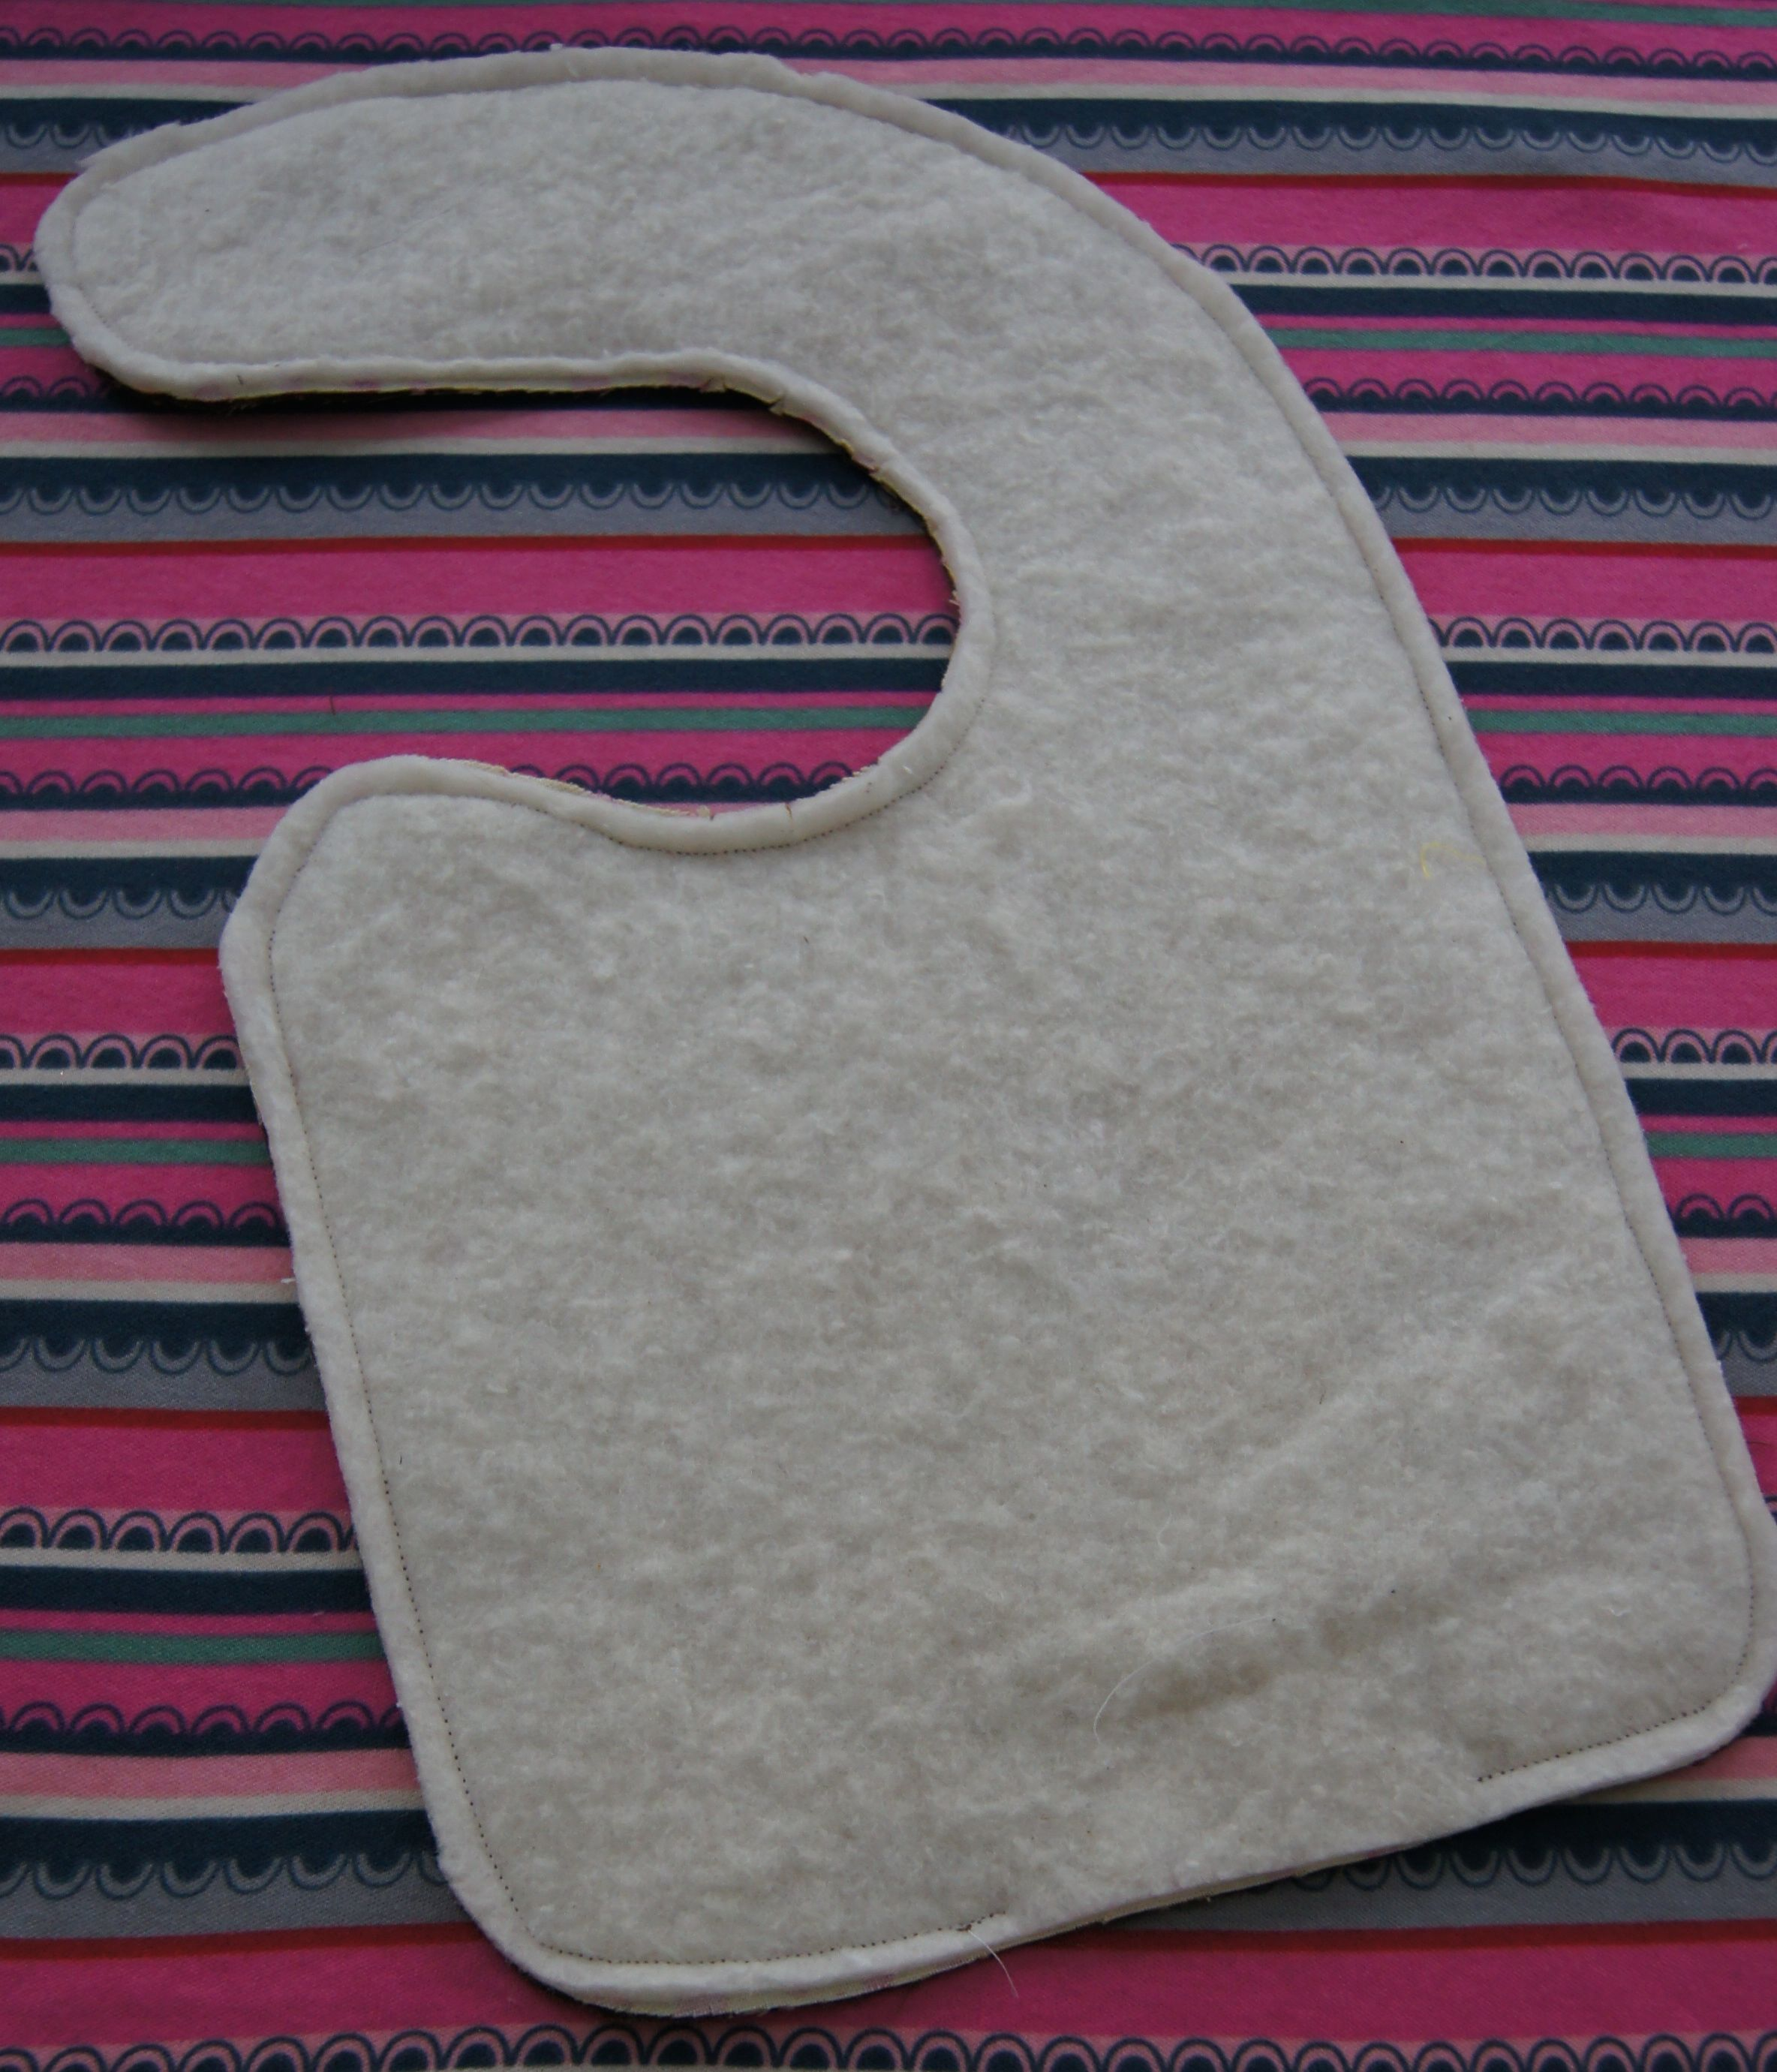 Quilt batting used as the absorbent middle layer of a bib